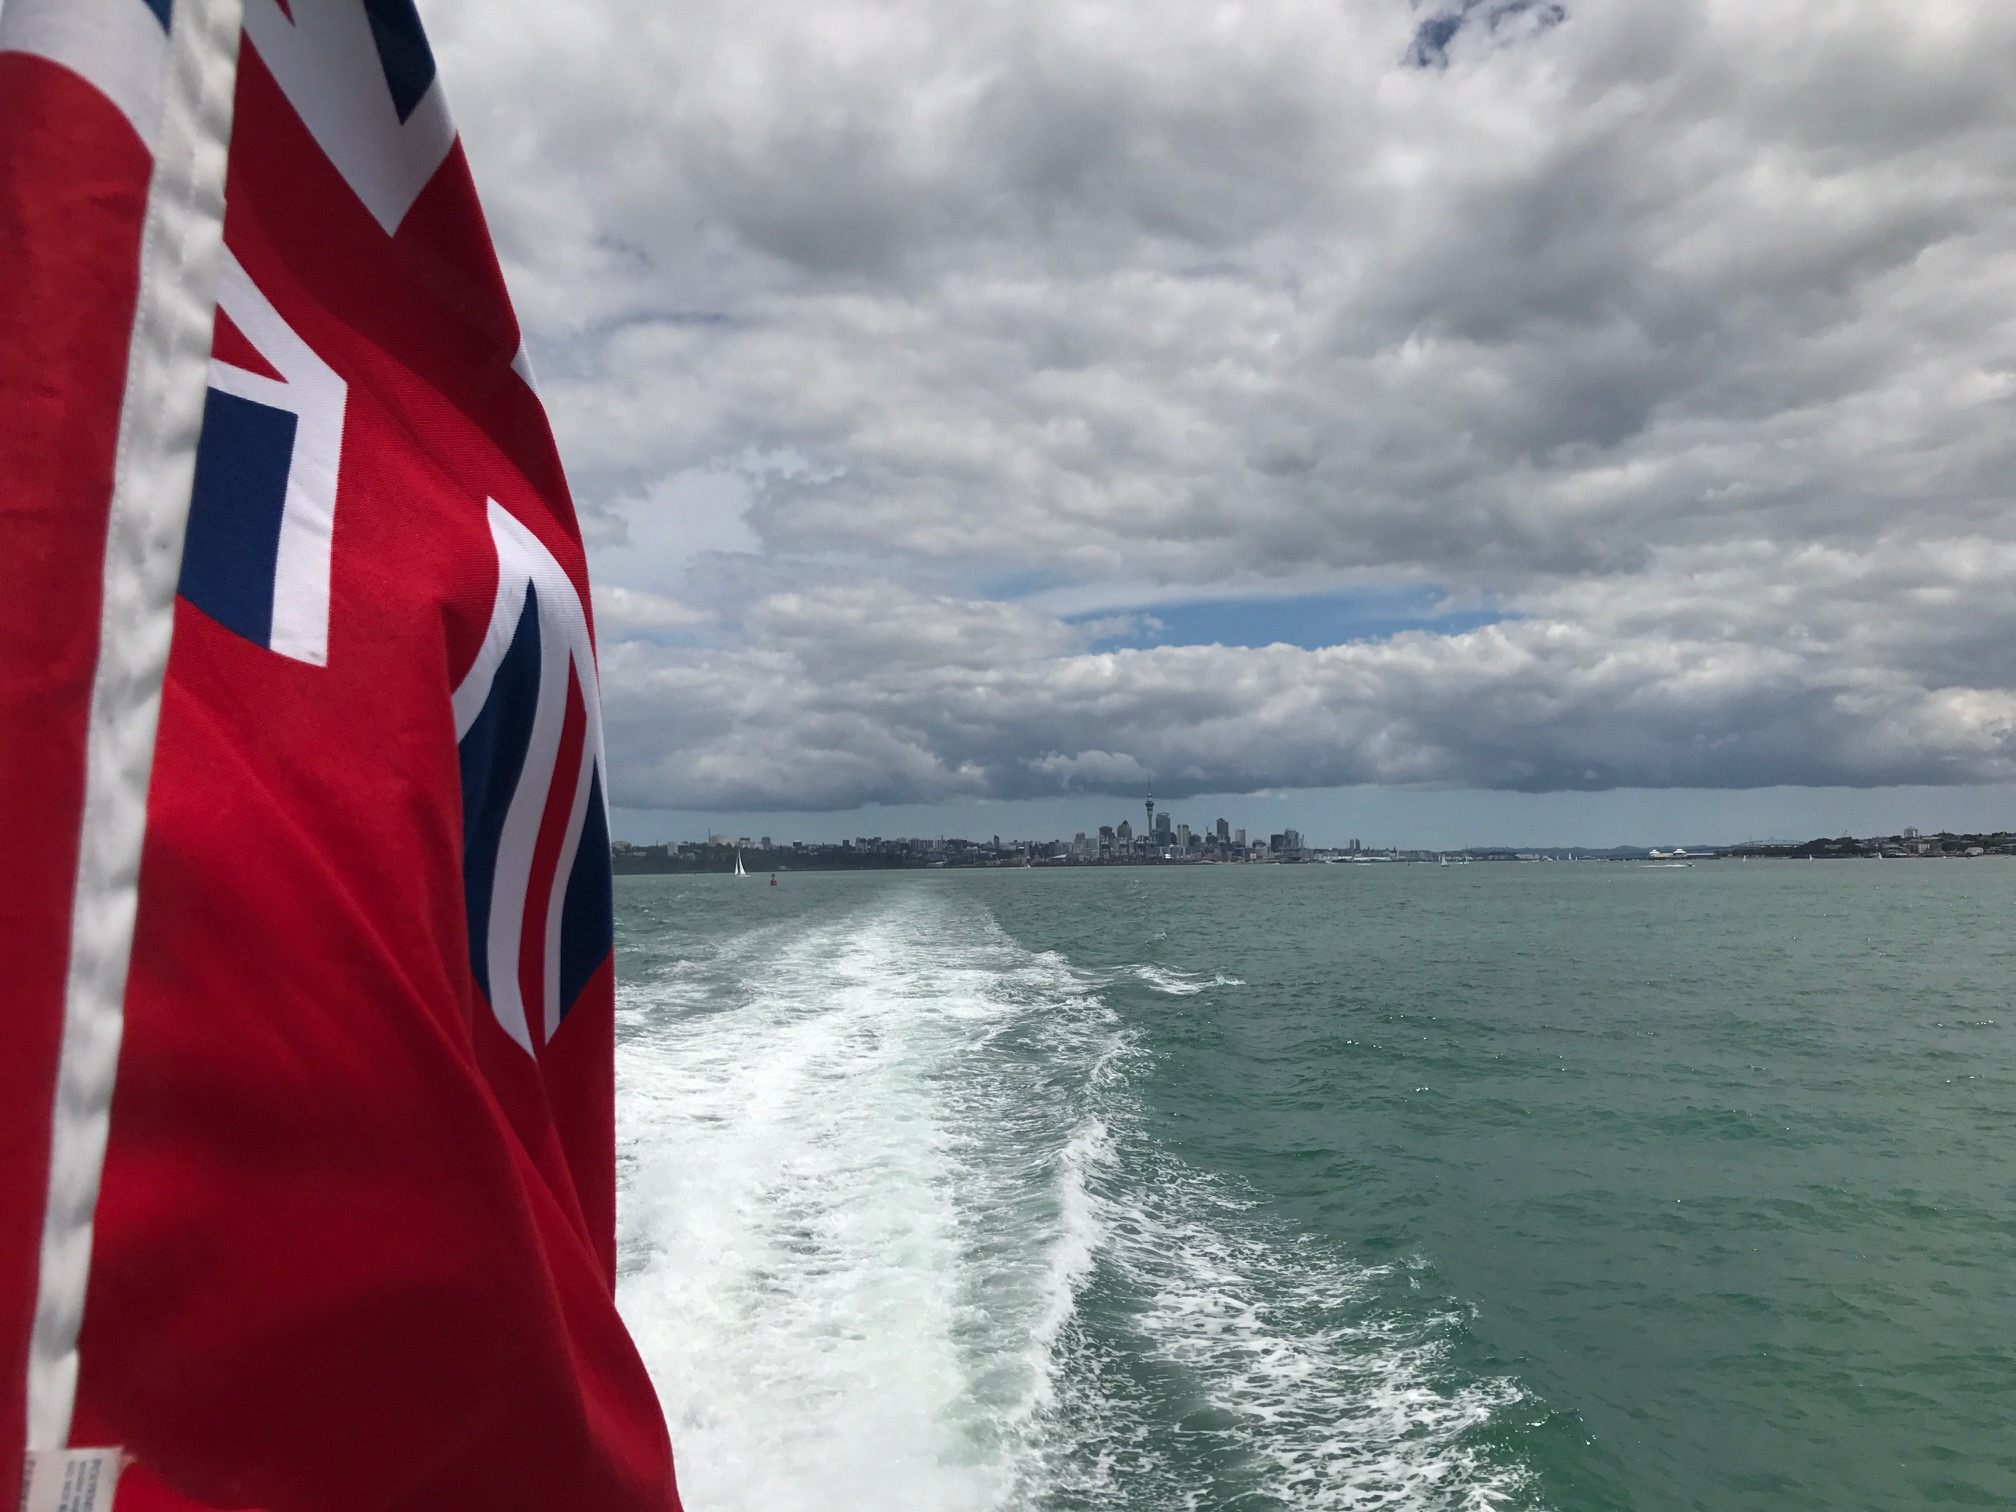 Sailing to Waiheke Island from Auckland